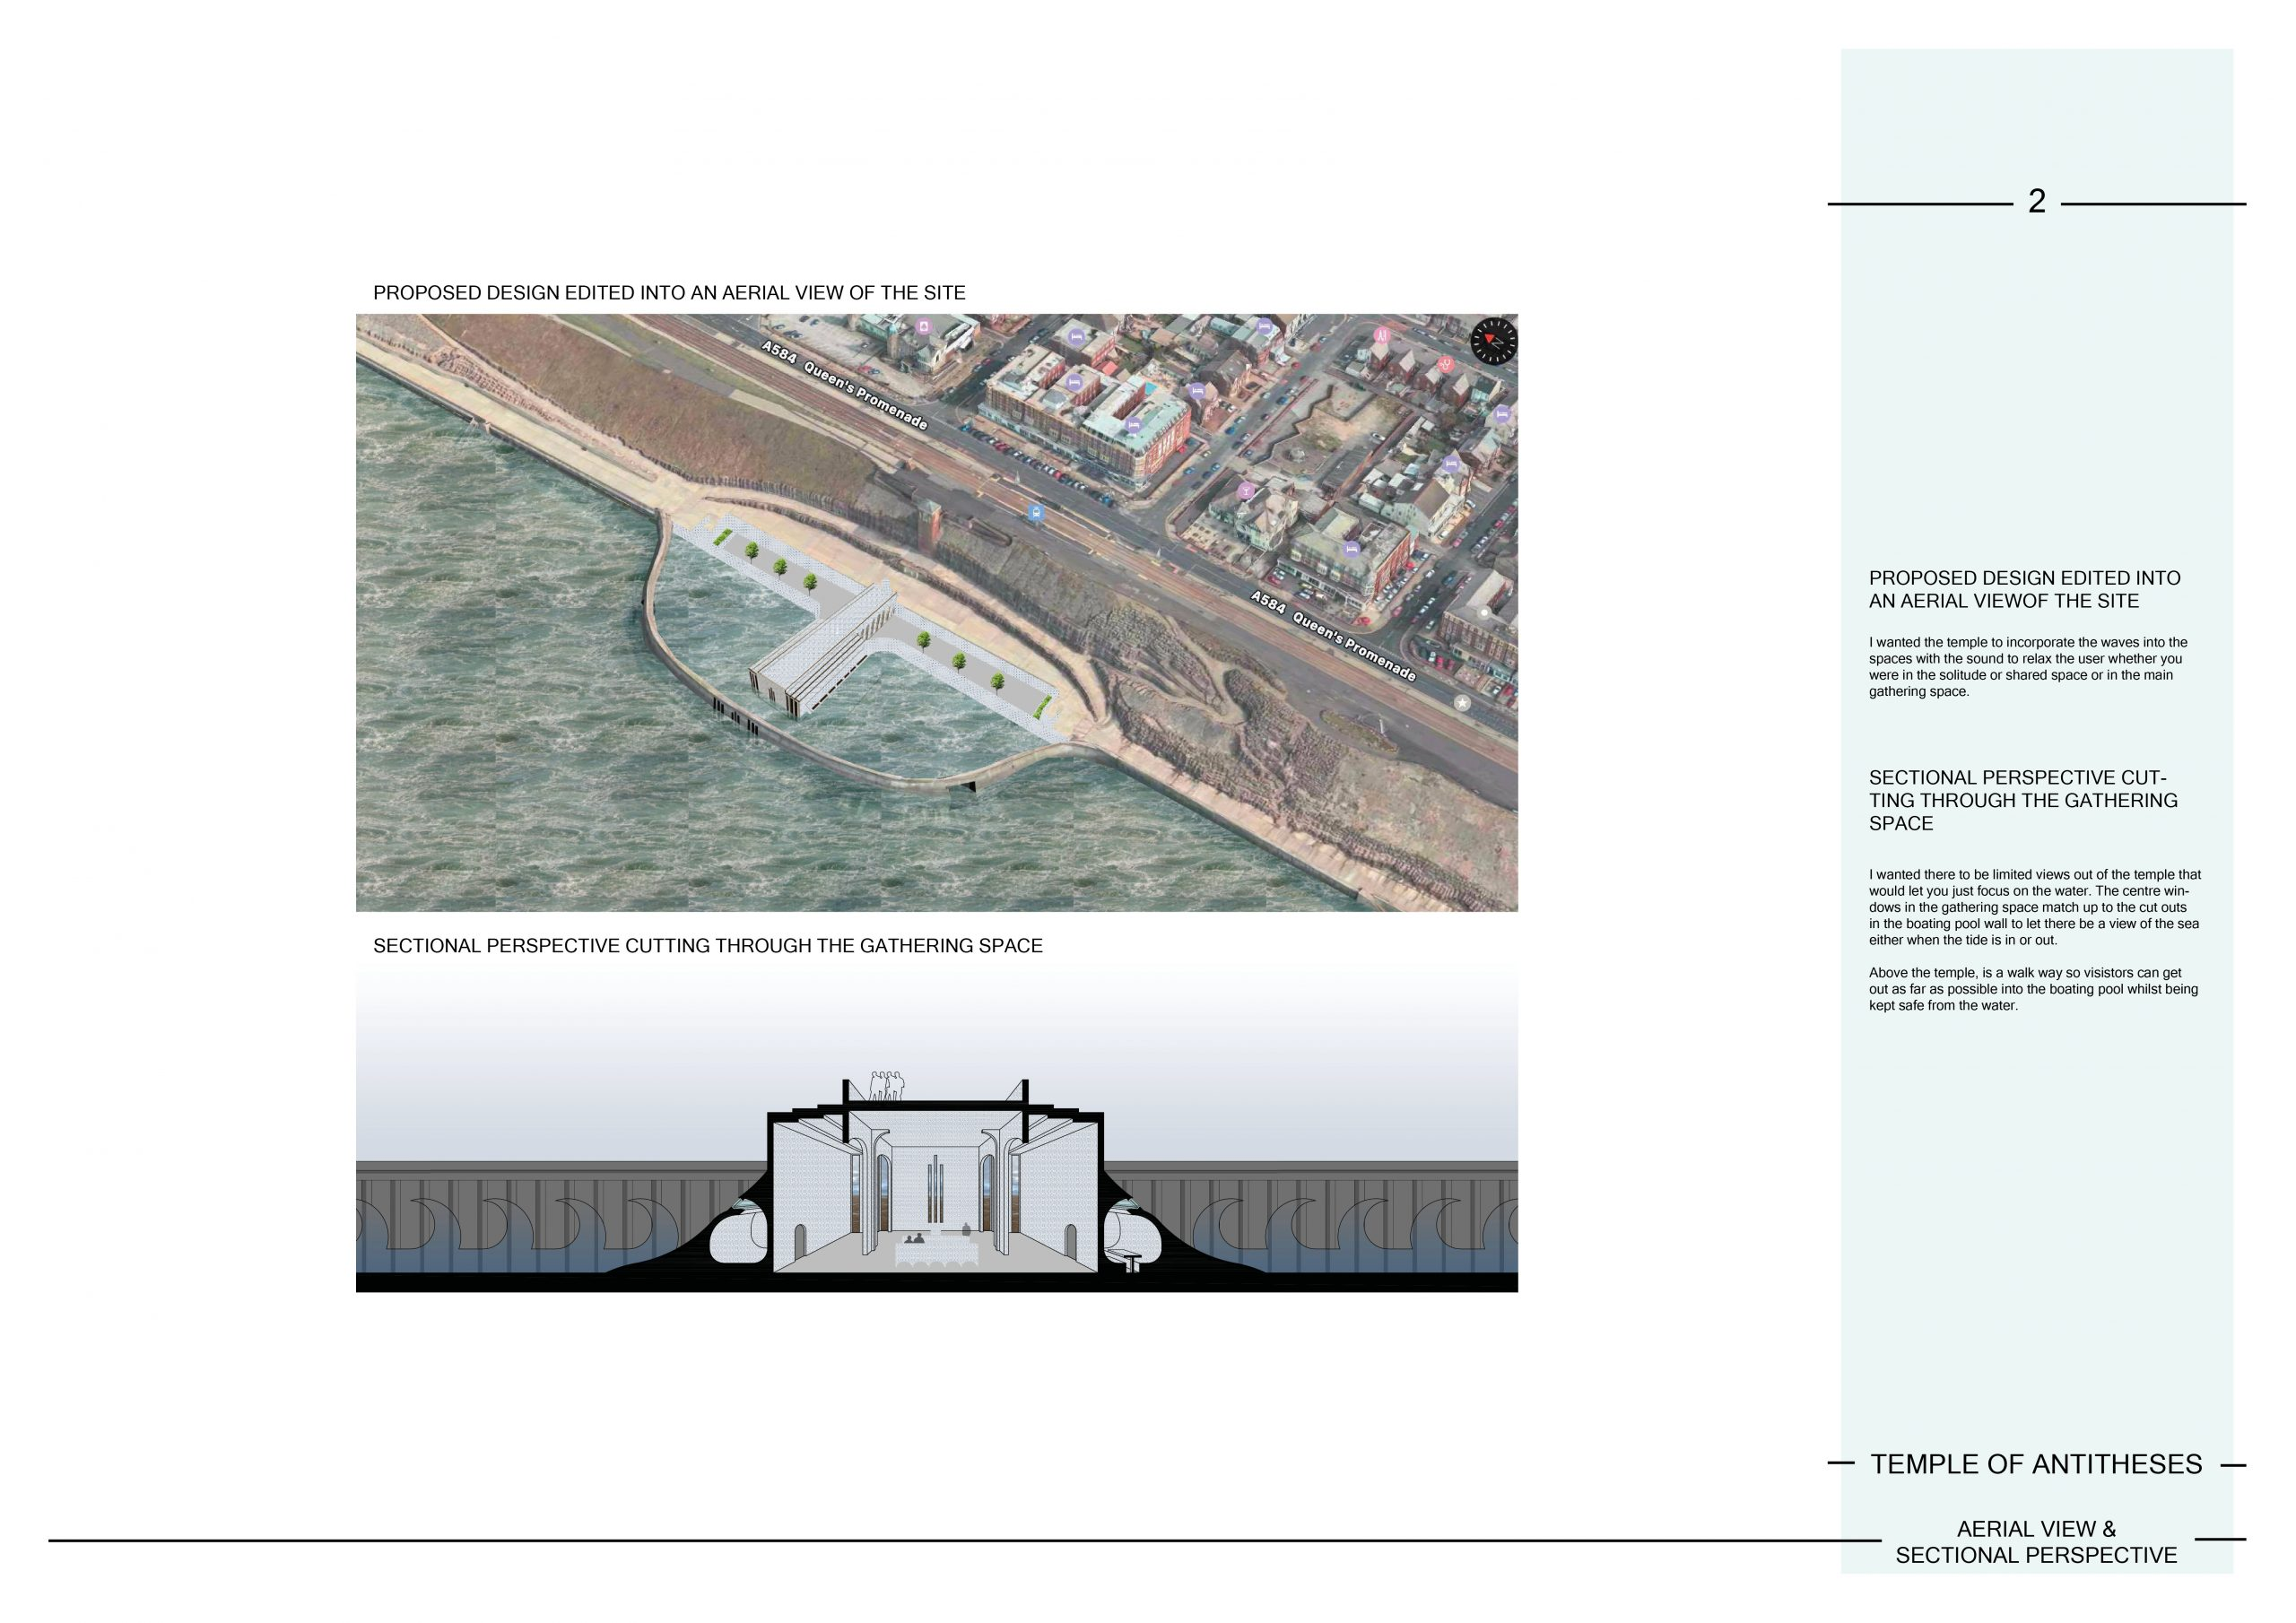 2 Aerial View & Sectional Perspective Image